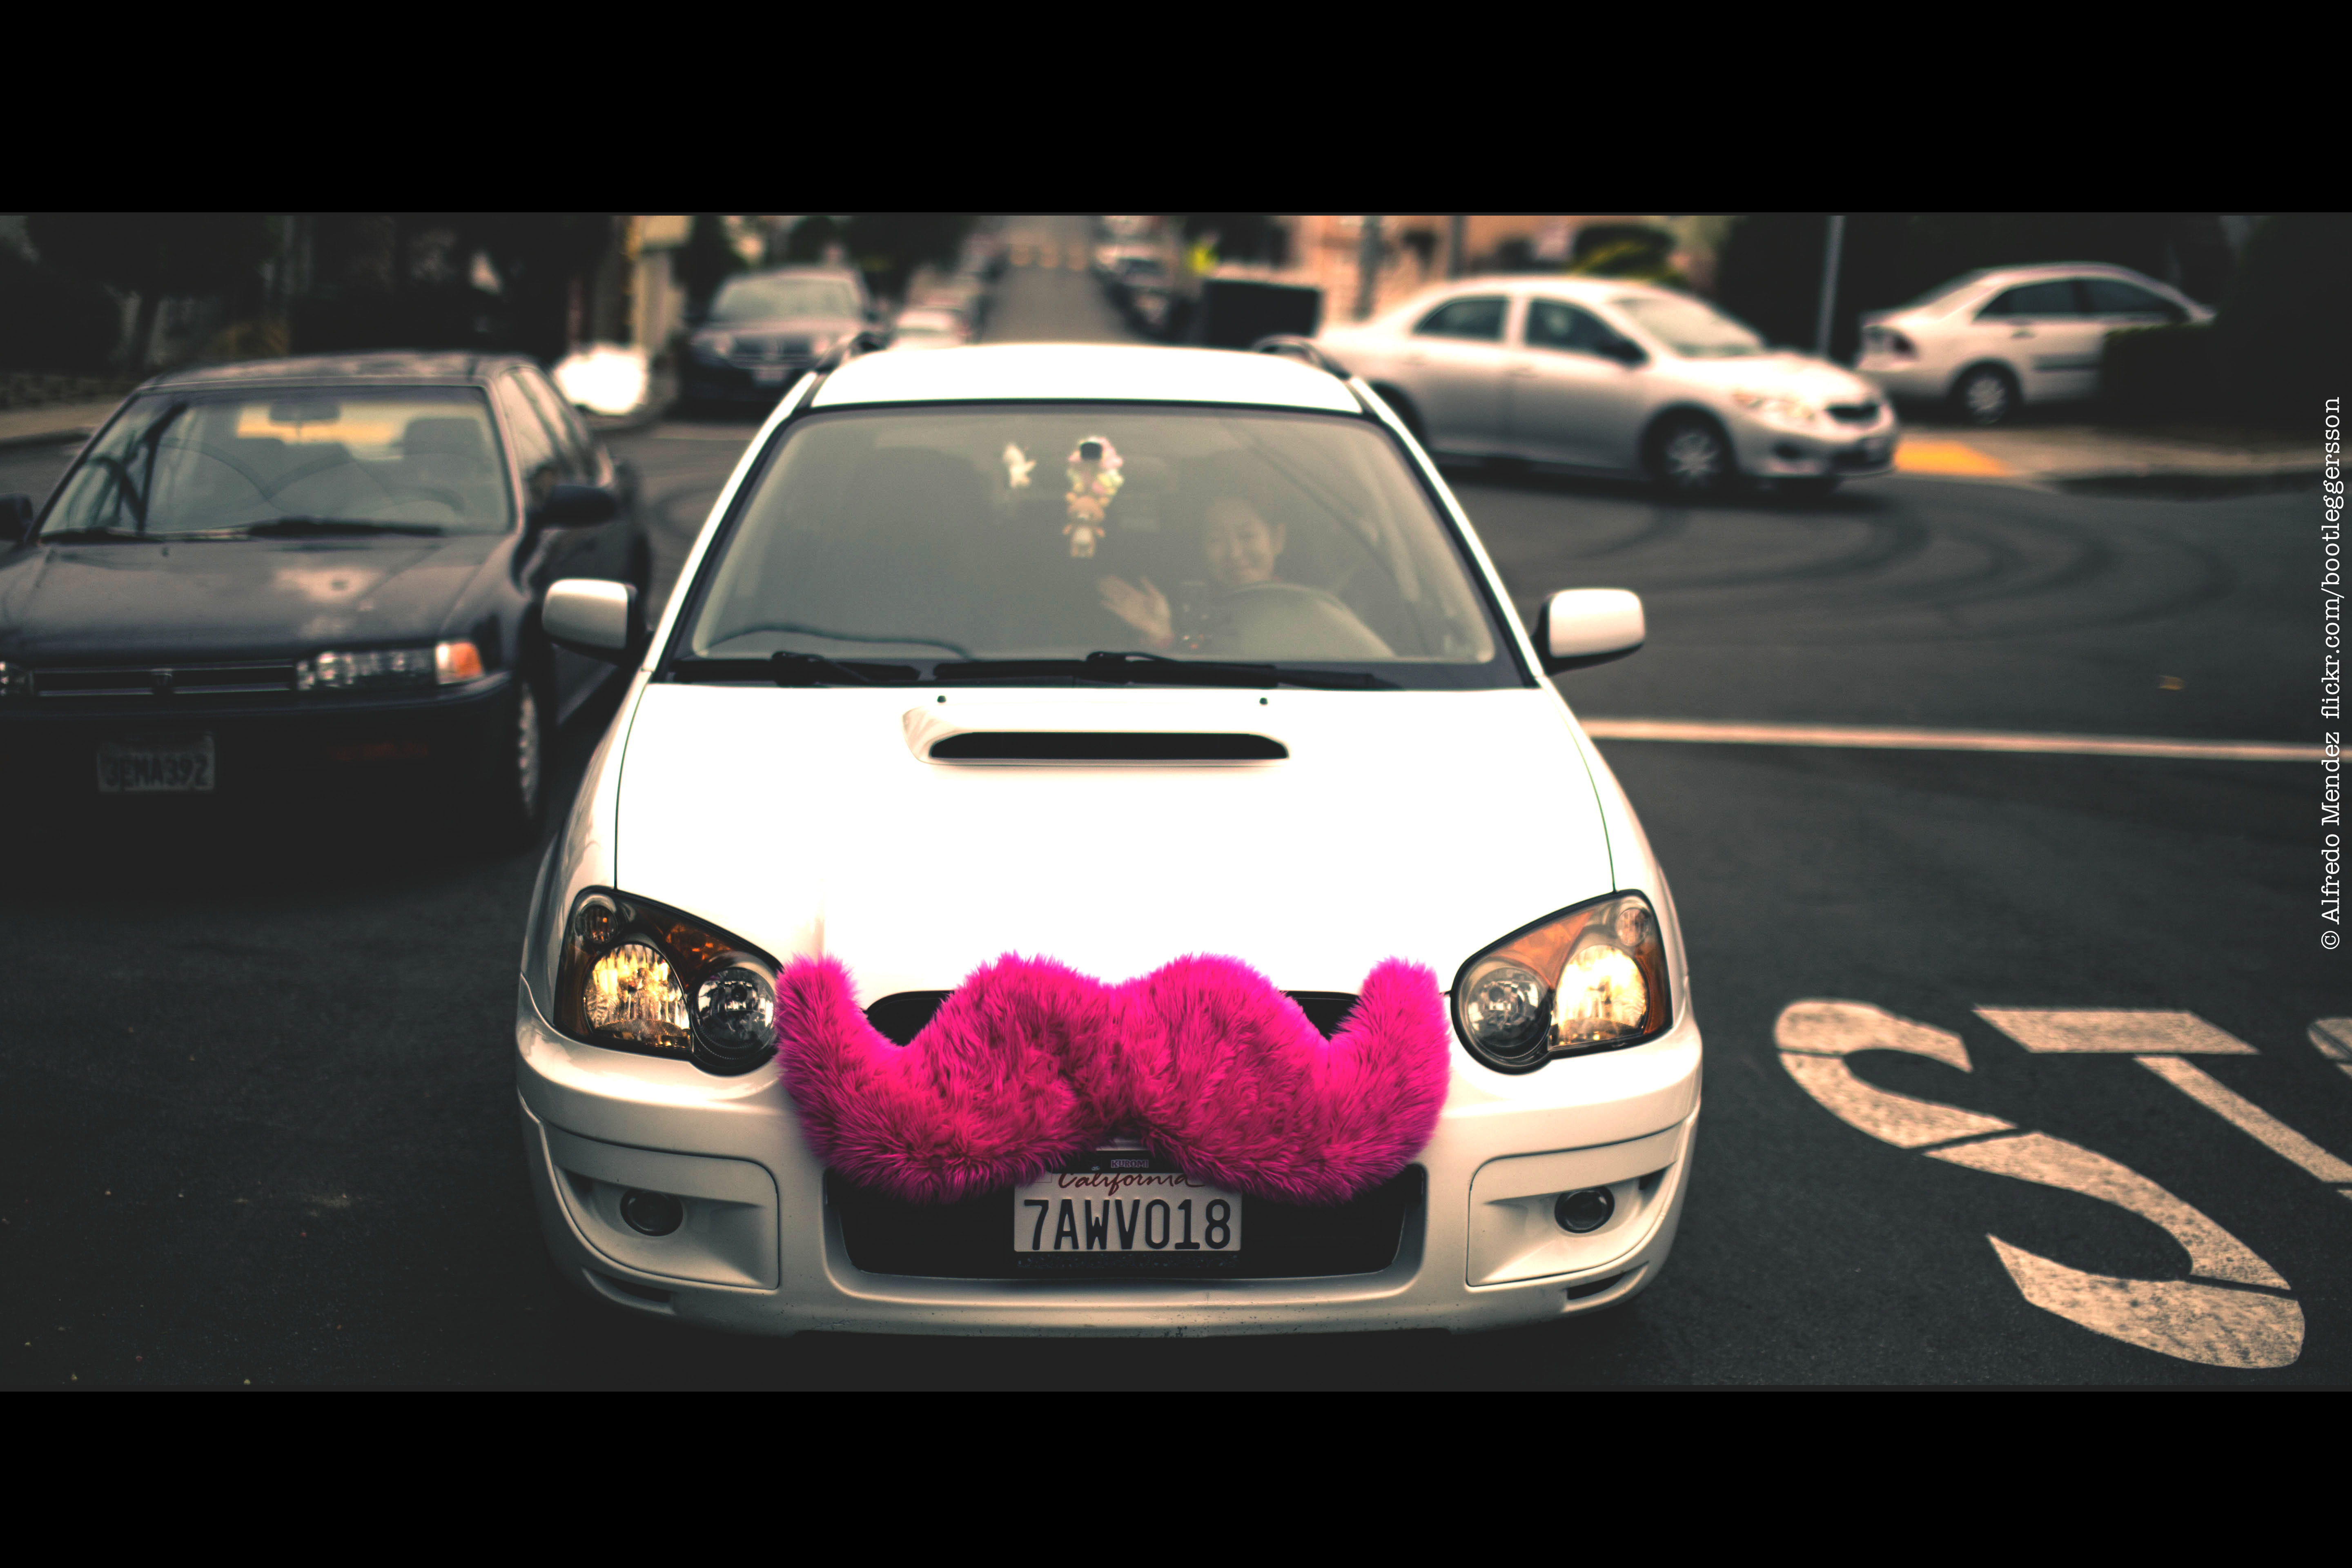 A photograph shows a car with a large, fuzzy, pink moustache attached to the front grill of the car.